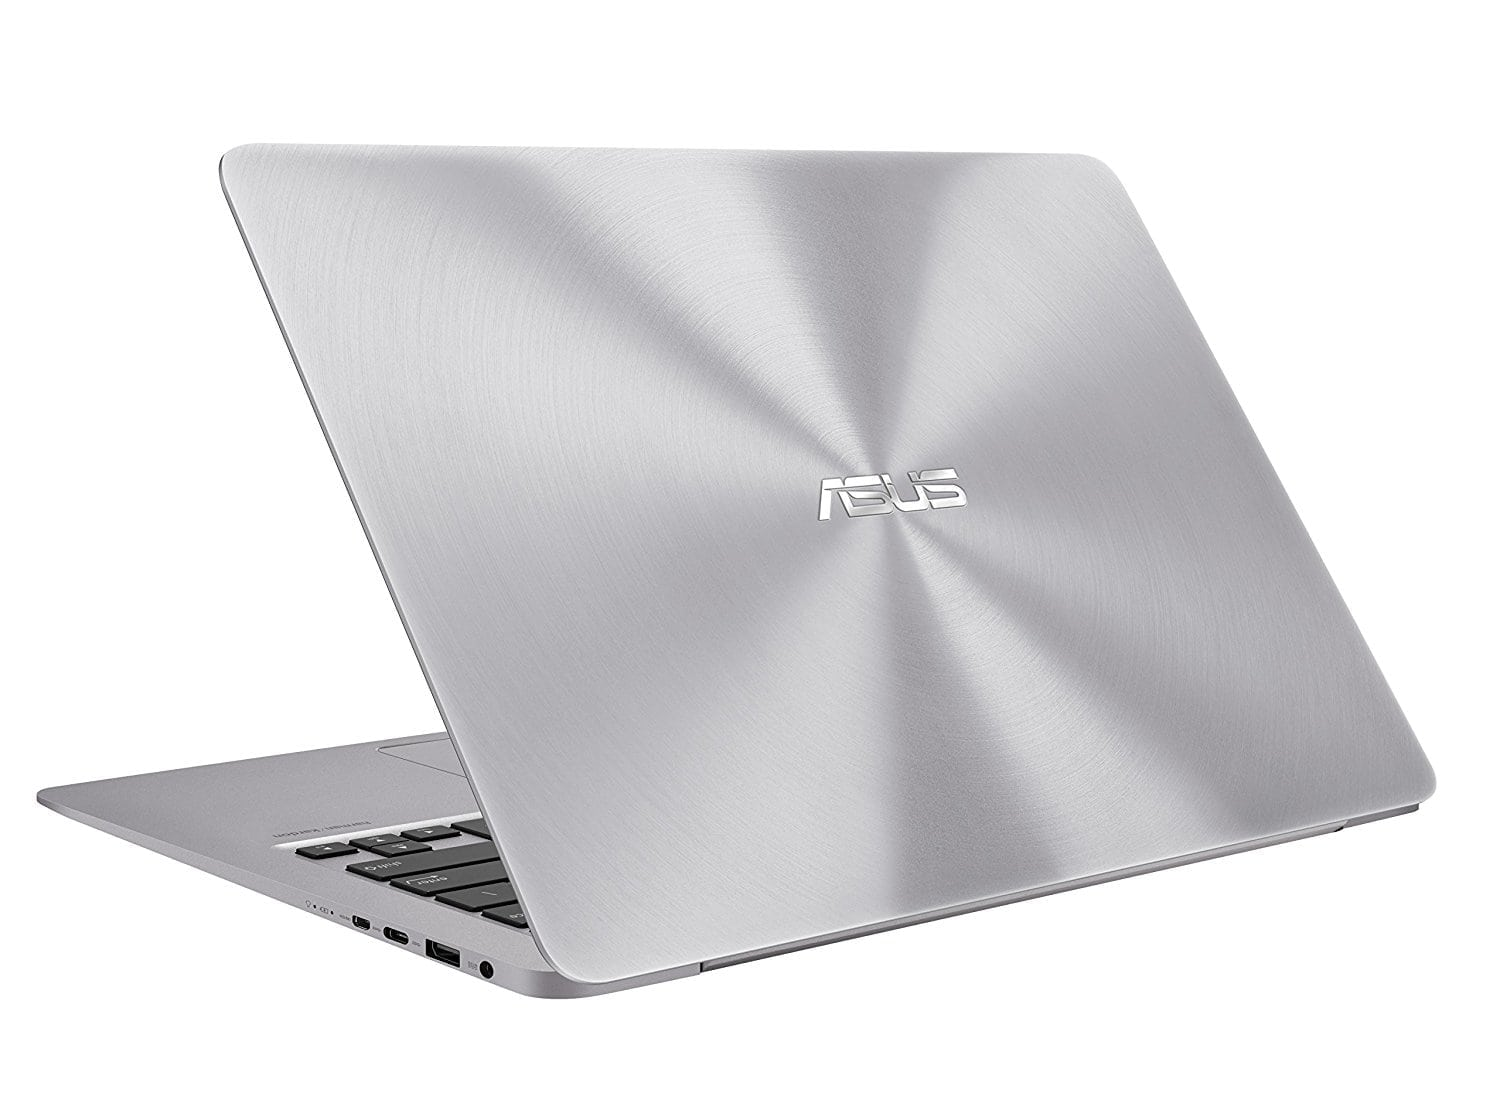 ASUS ZenBook Laptop Build